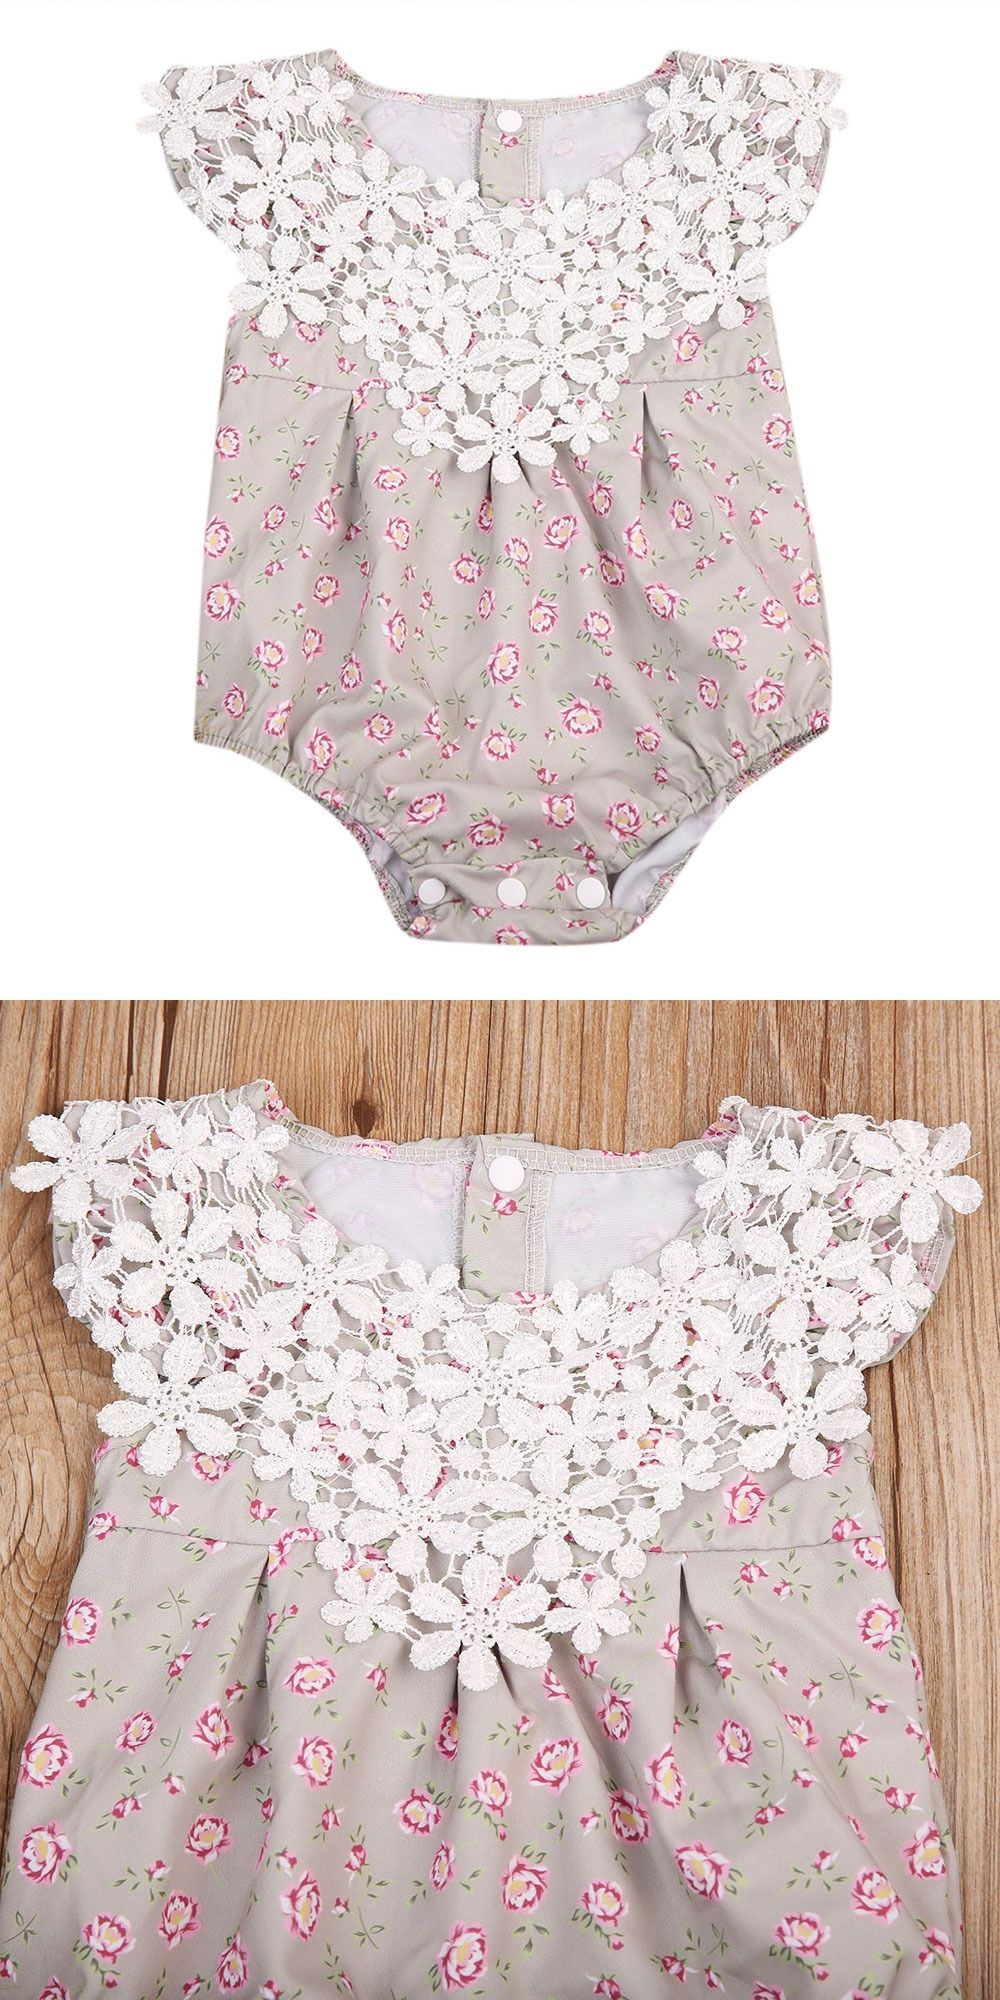 739fa1b8a6c New Infantil Baby Rompers Cute Newborn Baby Girls Flower Romper Sleeveless  Jumpsuit O-Neck Summer